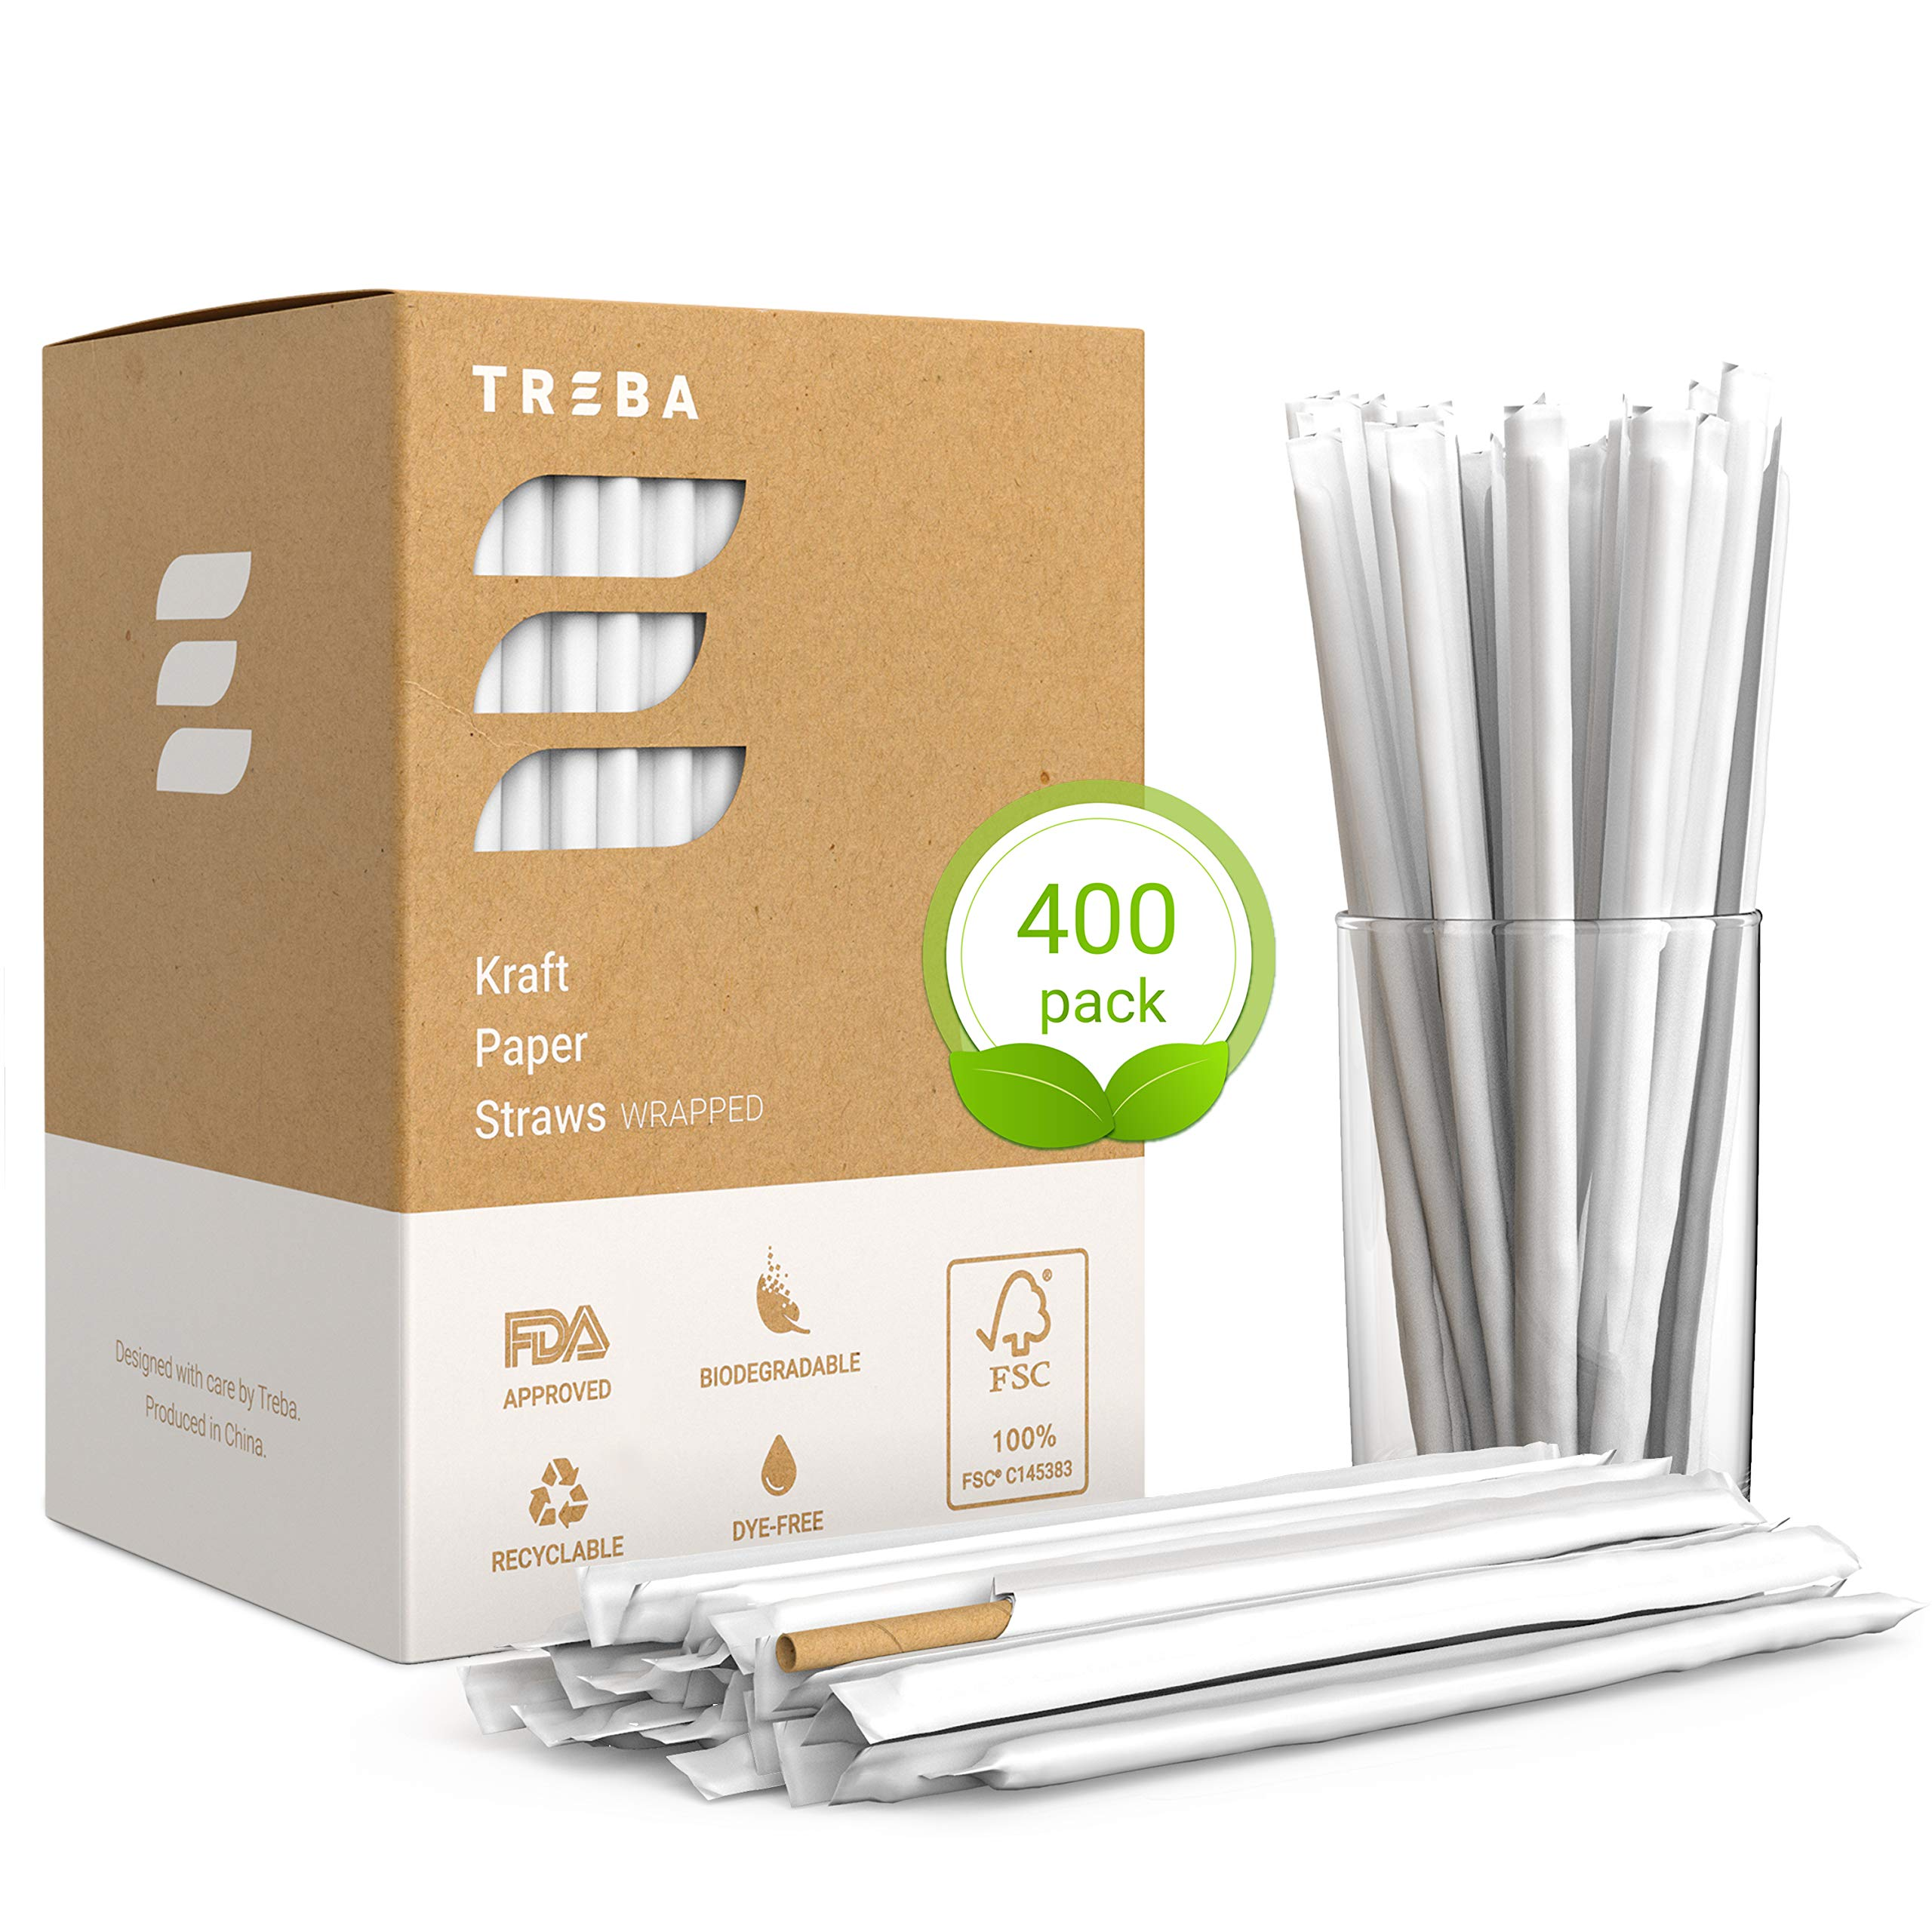 Eco-Friendly Paper Straws - Wrapped 400 pcs Biodegradable Drink Straws - Bulk Pack Dye Ink Free Kraft Drinking Straws by TREBA